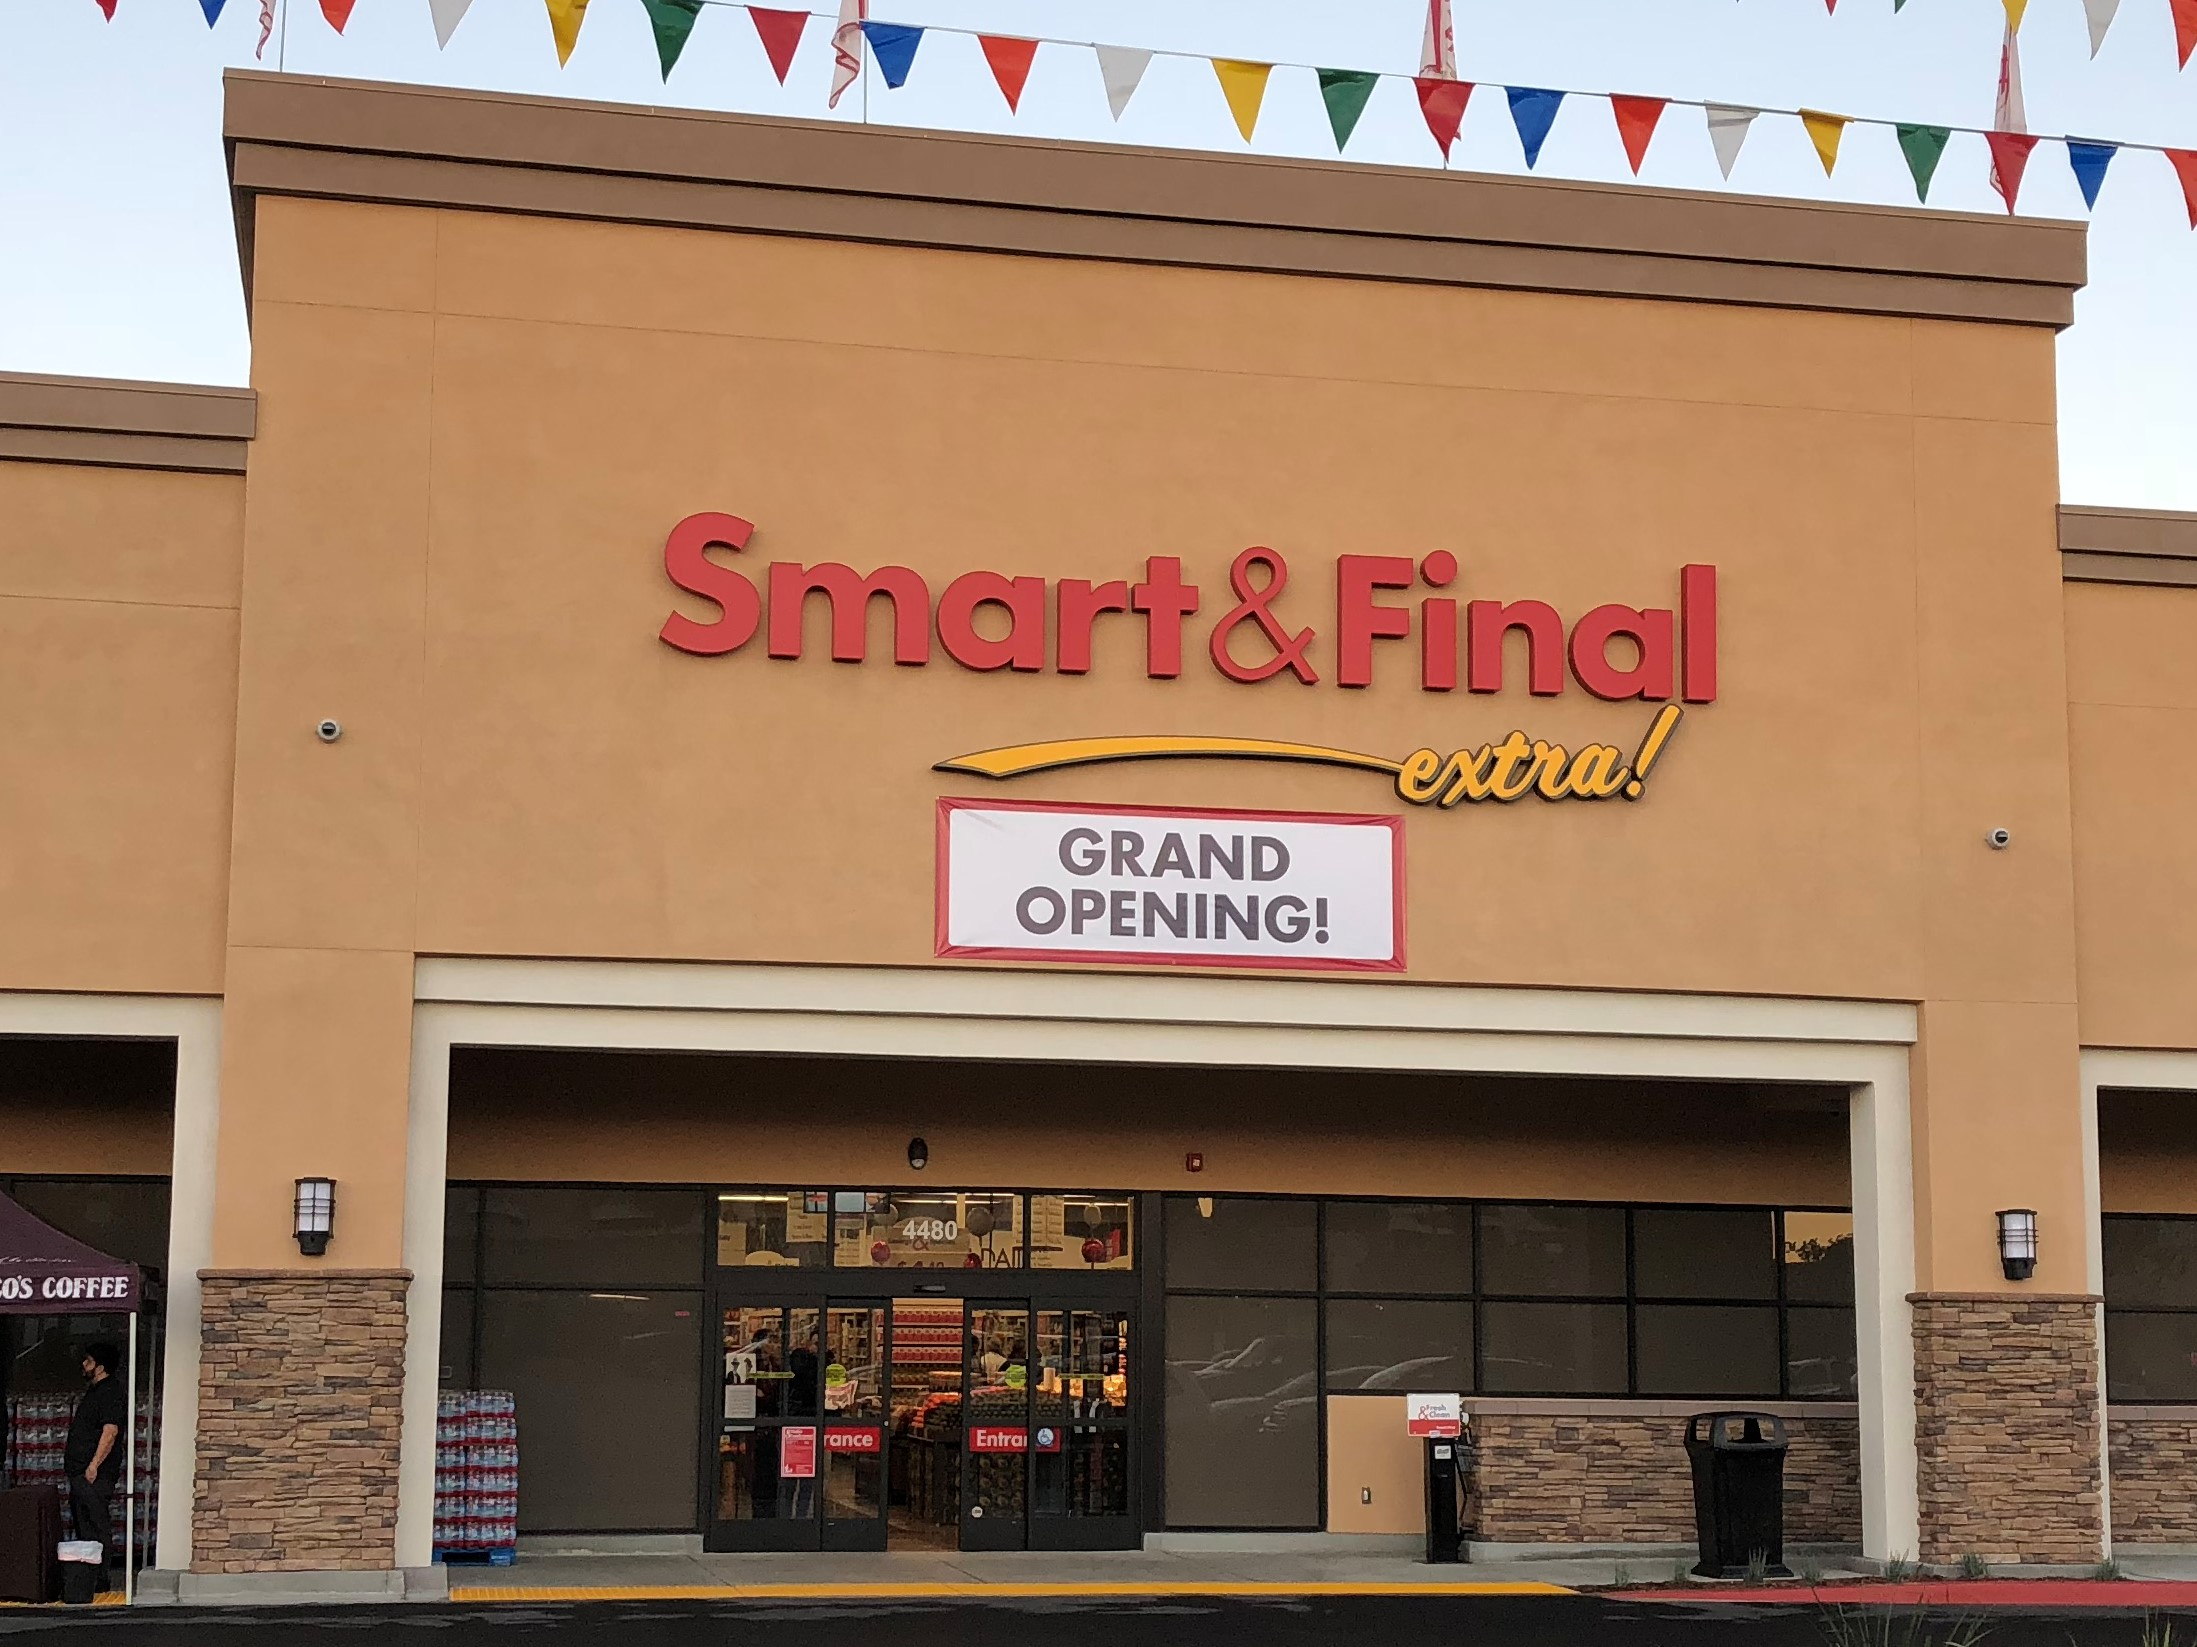 Smart & Final Store Front - Grocery Store in Long Beach, CA